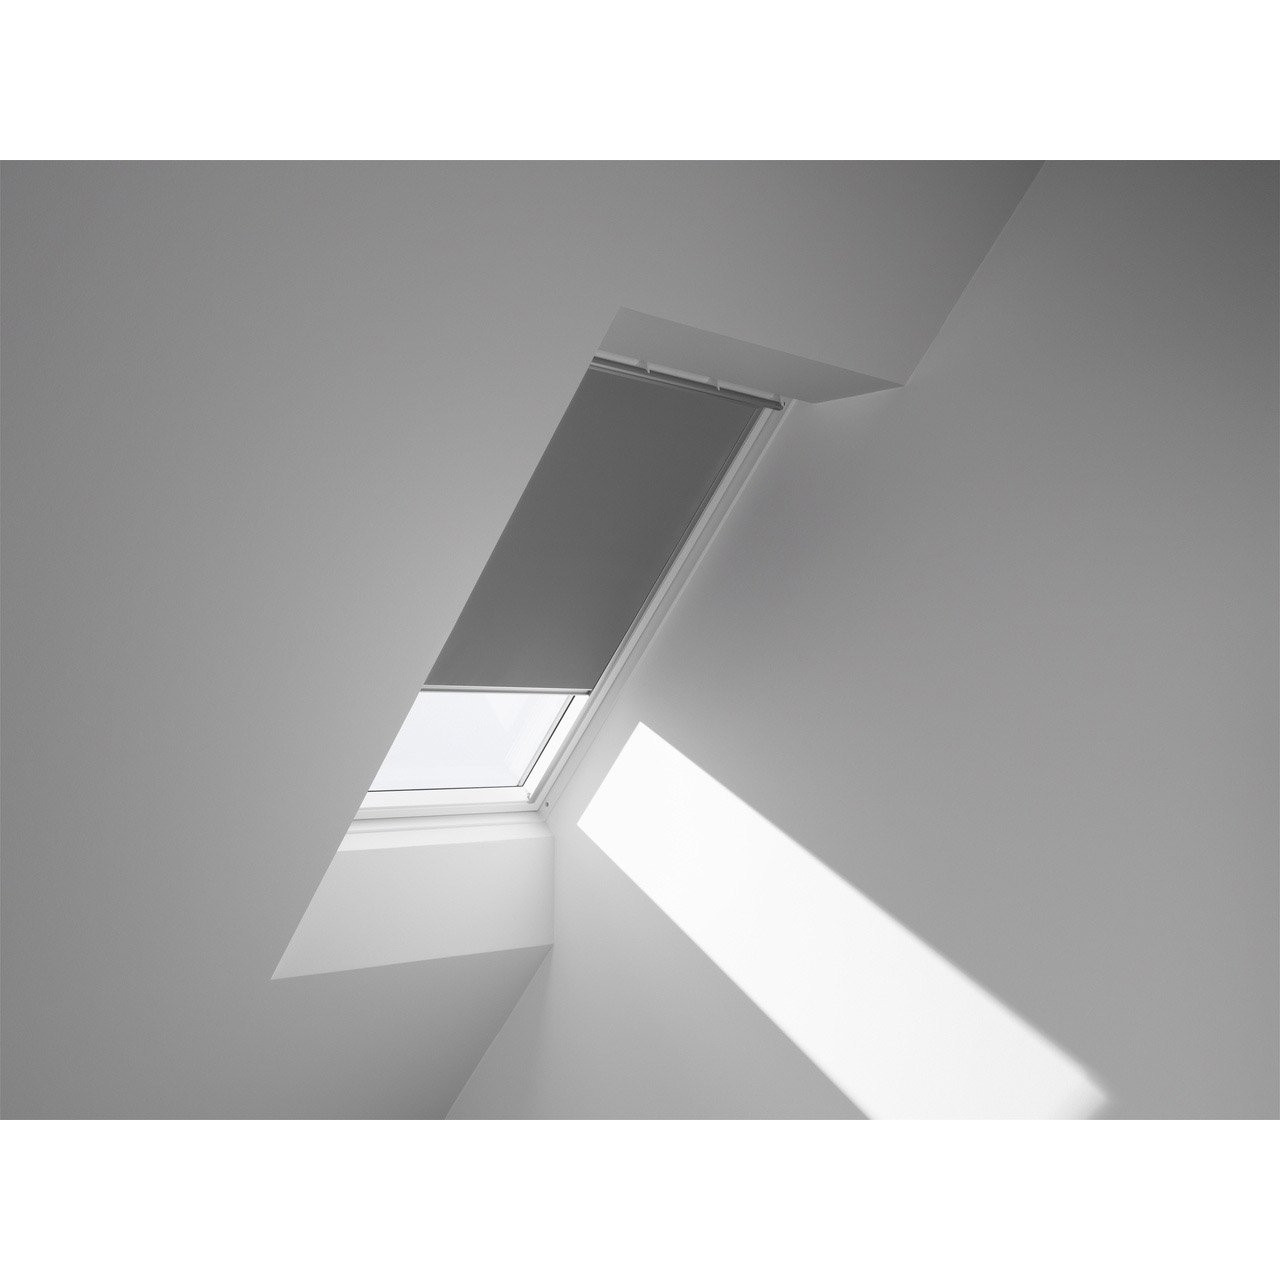 Occultant Velux Store Occultant Velux Gris Dkl Sk06 0705s Stores Pour